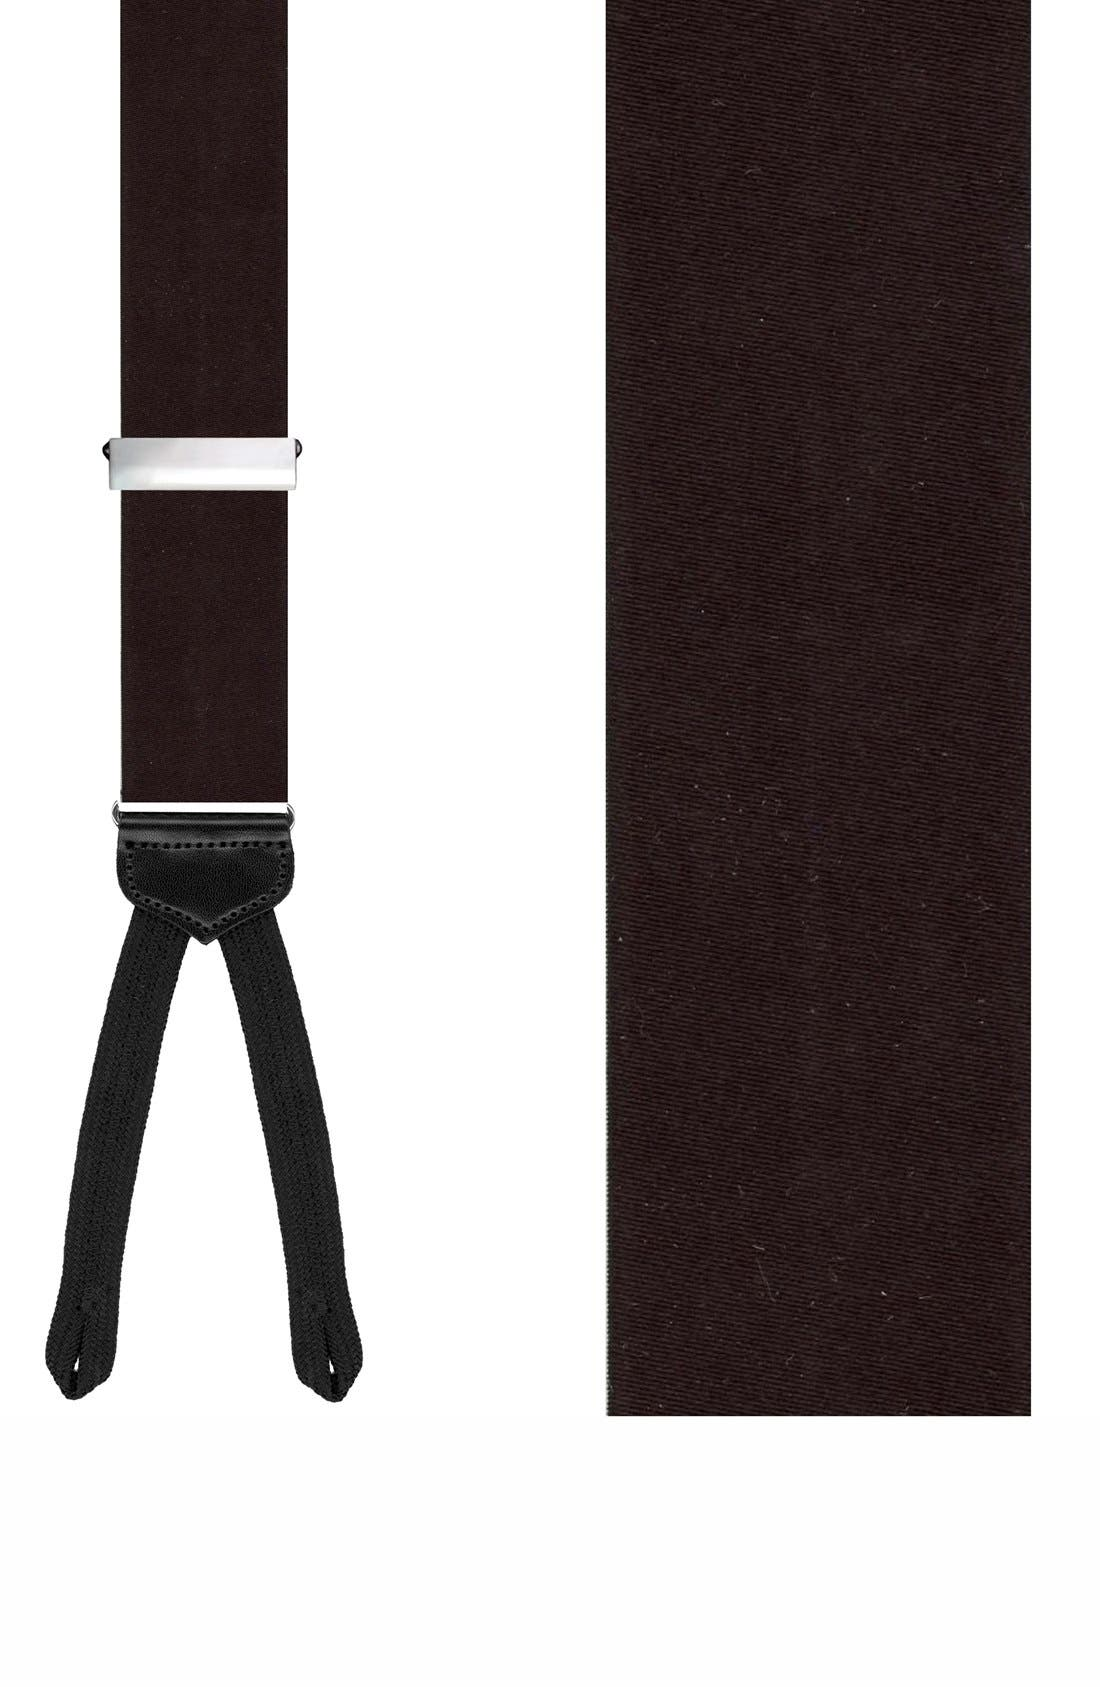 TRAFALGAR 'Kington II' Silk Suspenders